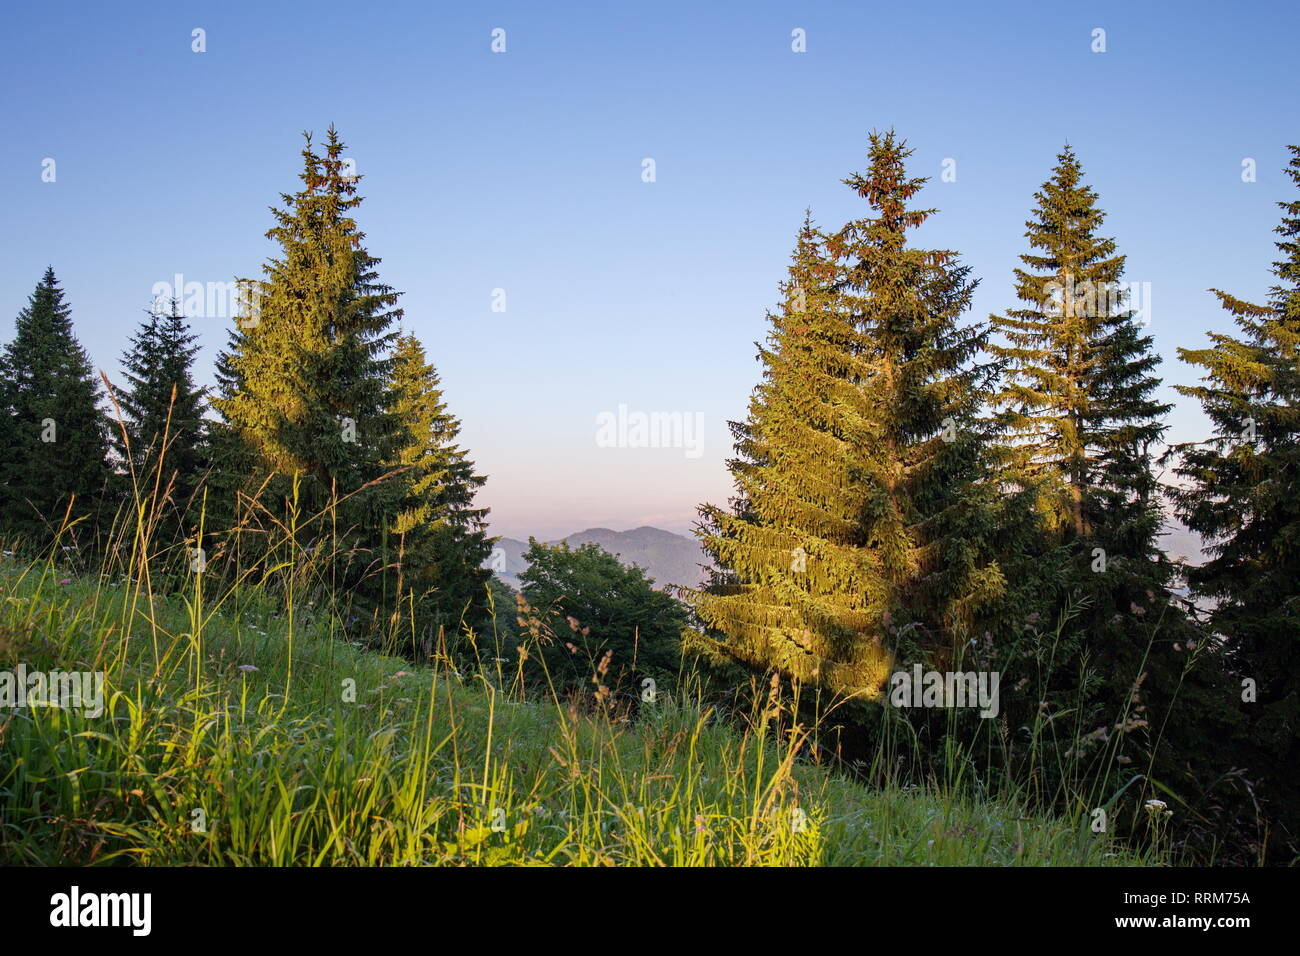 Monumental old spruces in national park in the summer evening, idyll with blue sky and green trees in sunset light - Stock Image